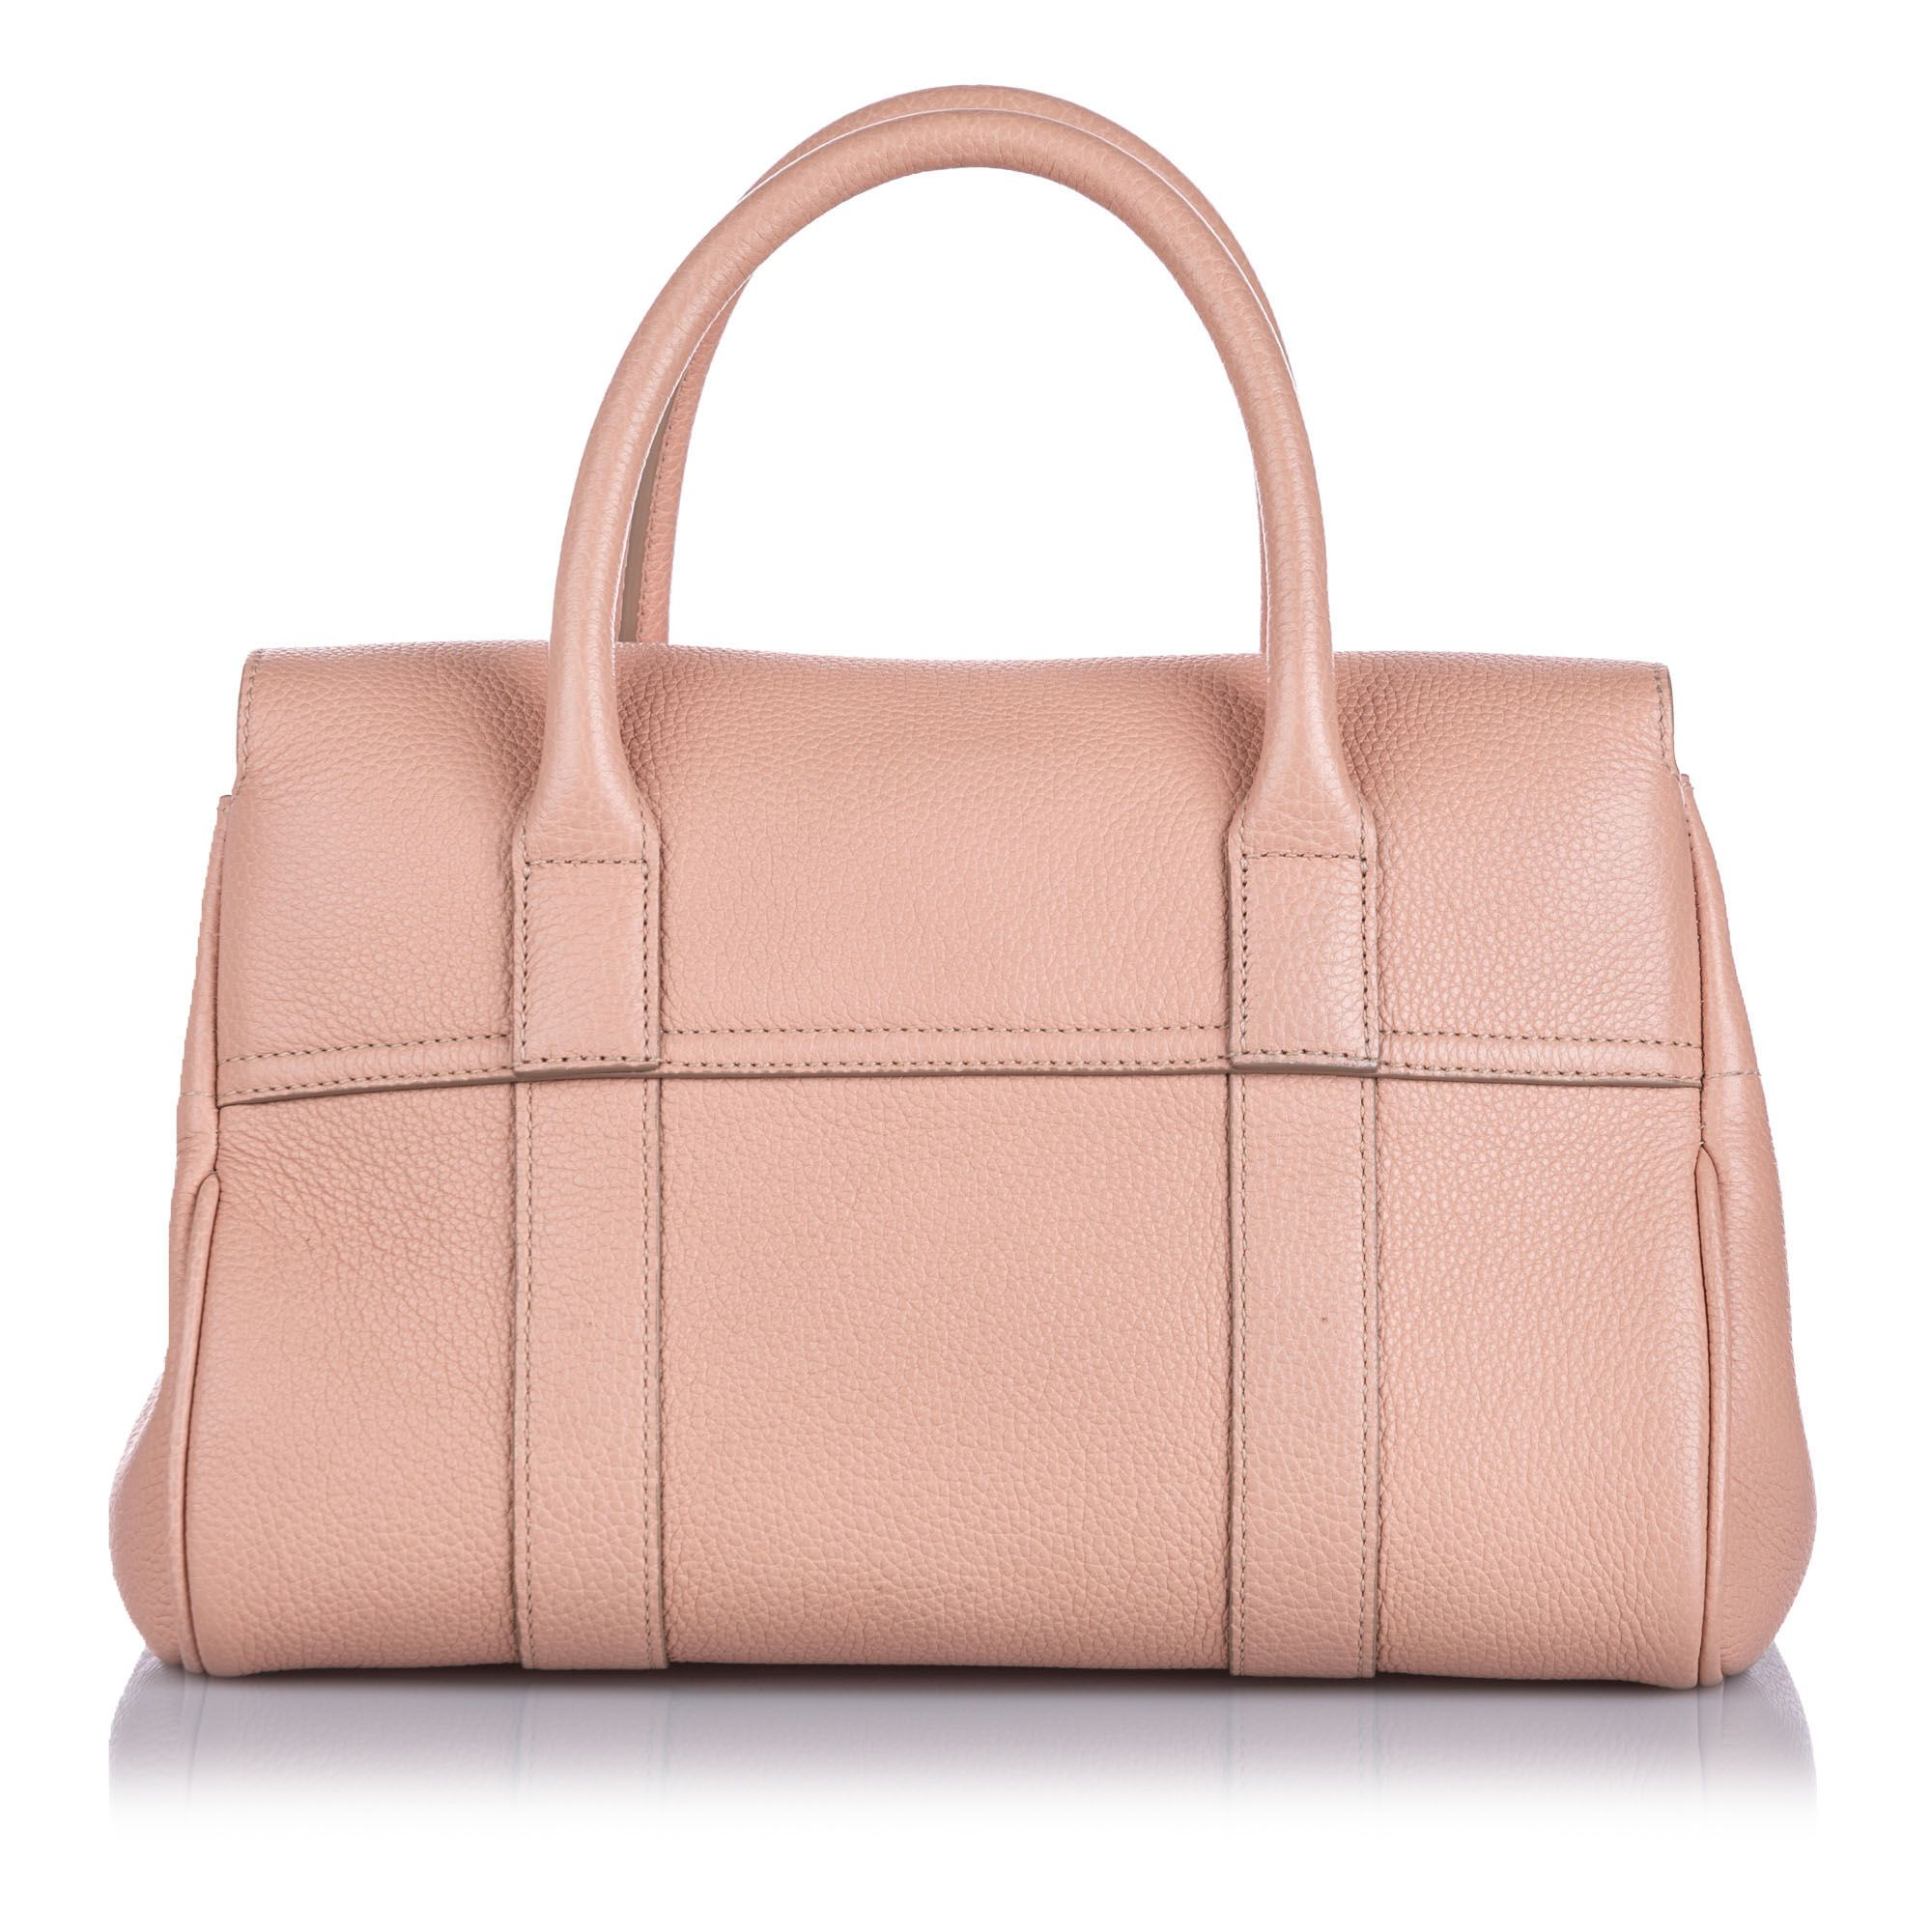 Vintage Mulberry Small New Bayswater Satchel Pink